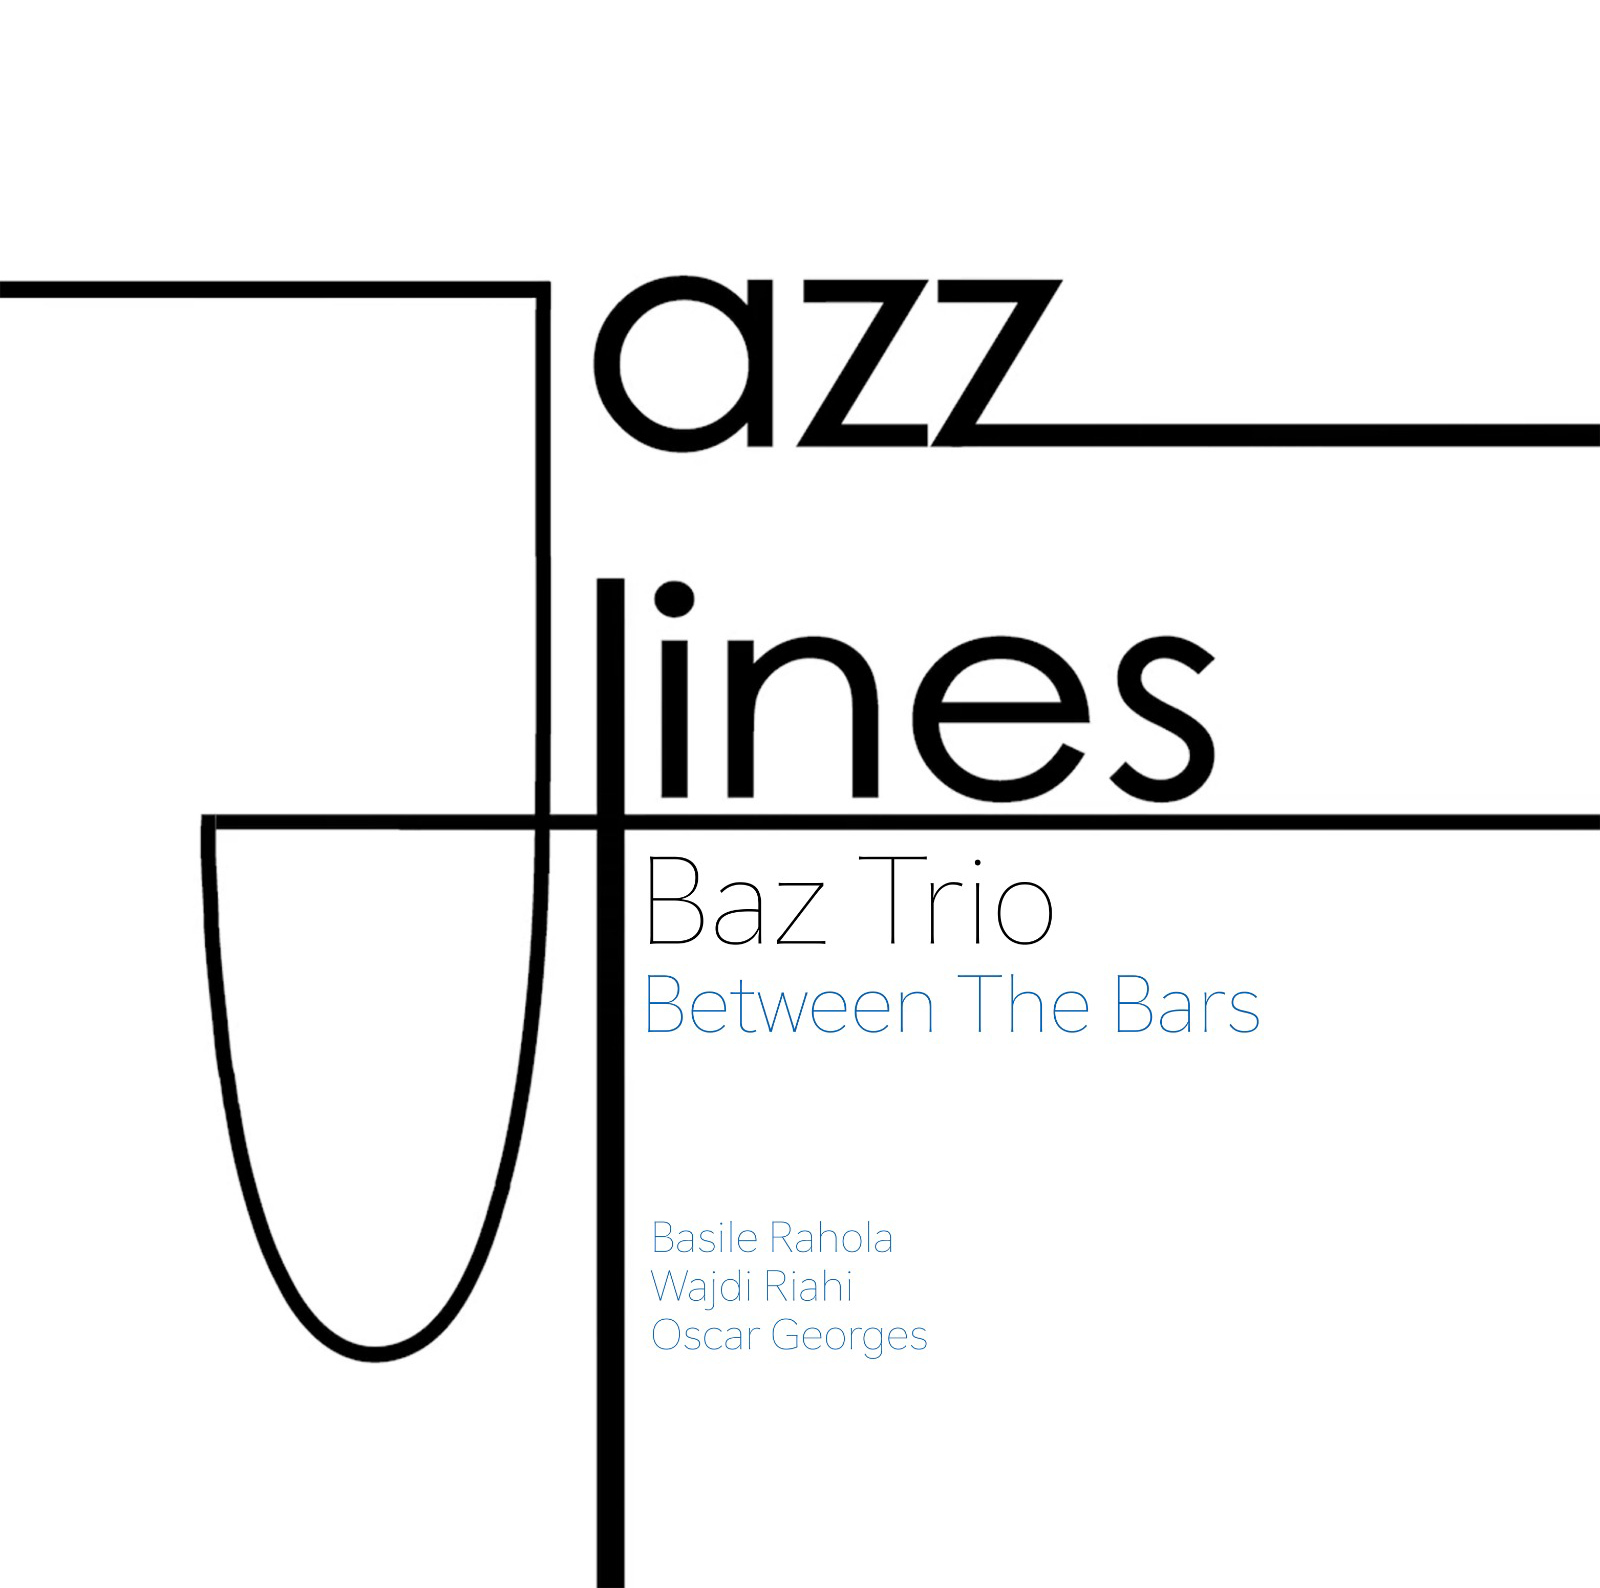 artwork - Between The Bars - Baz Trio